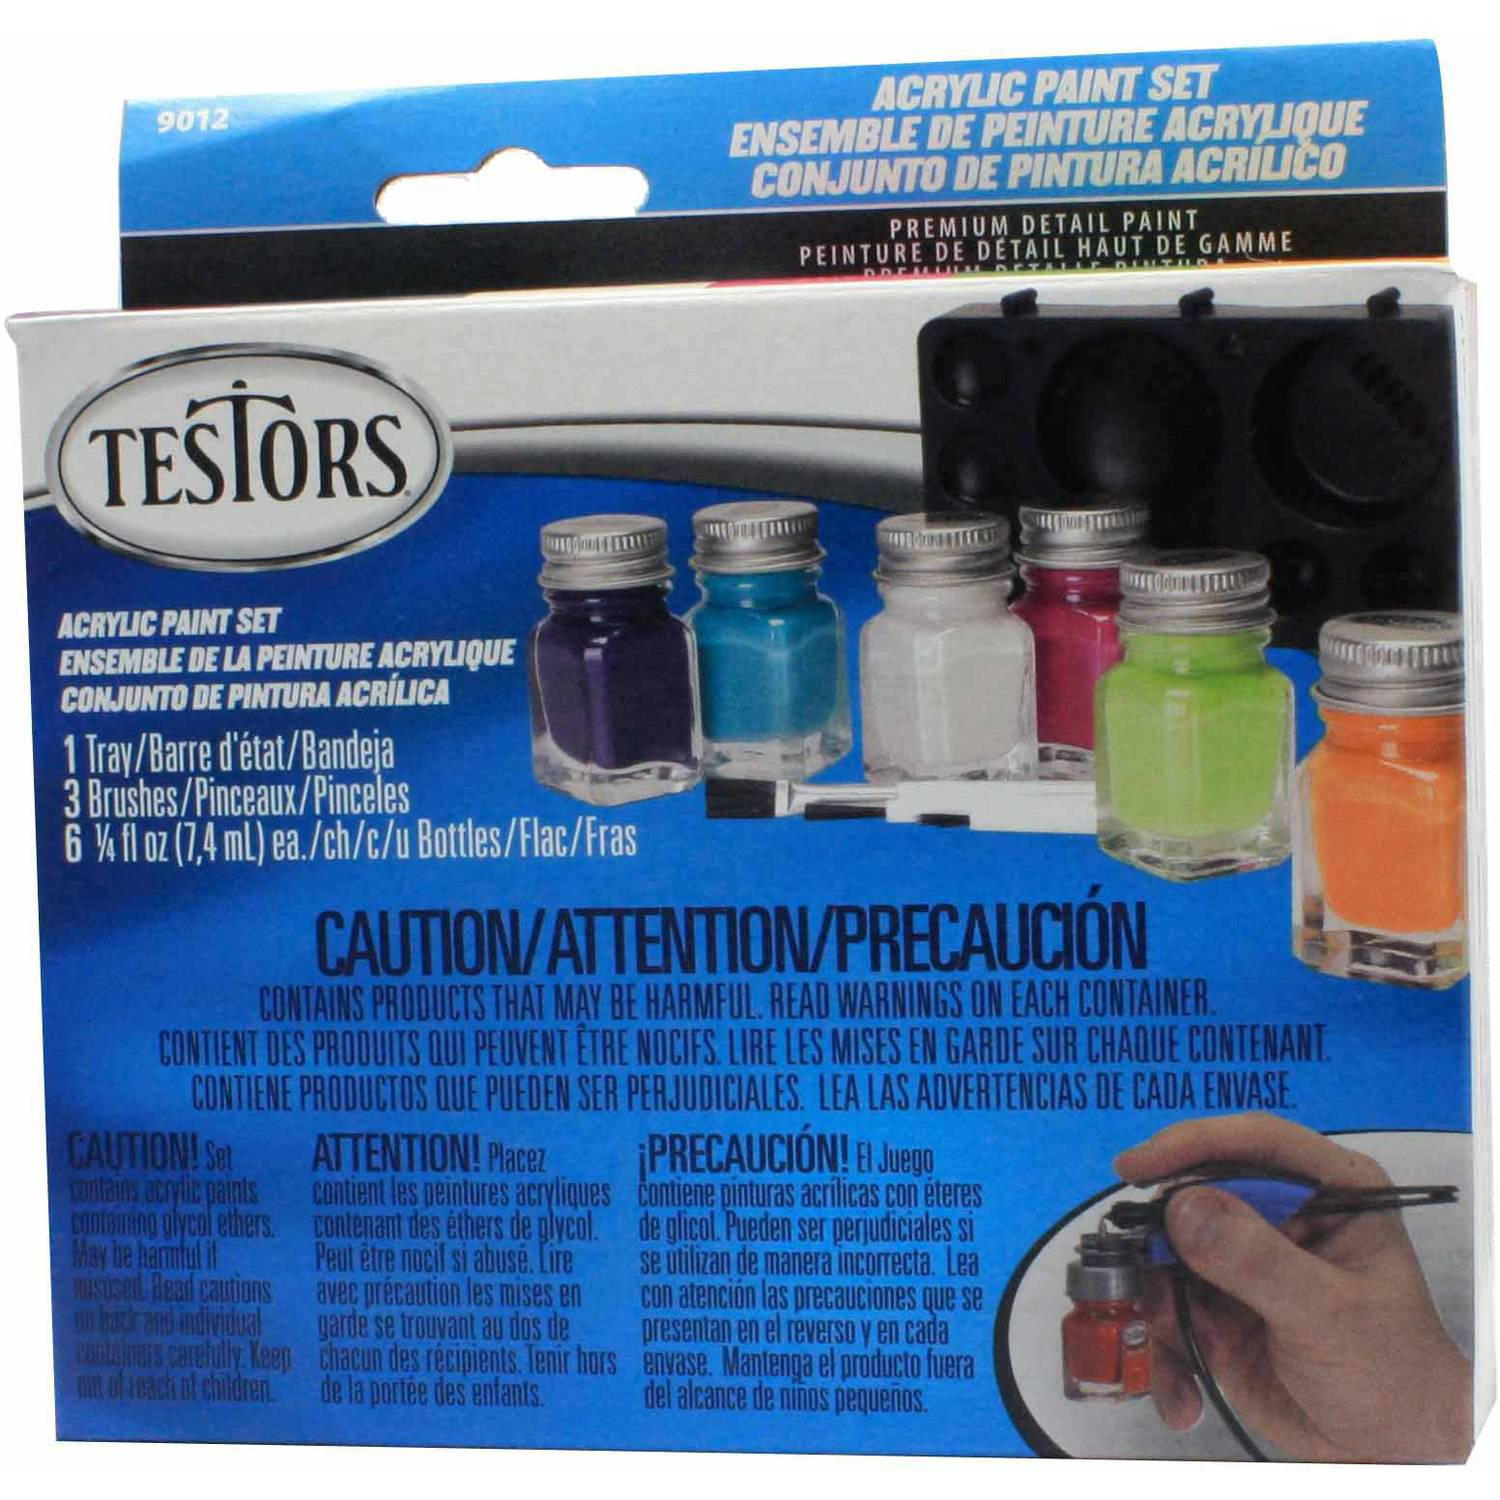 Testors Acrylic Paint Set